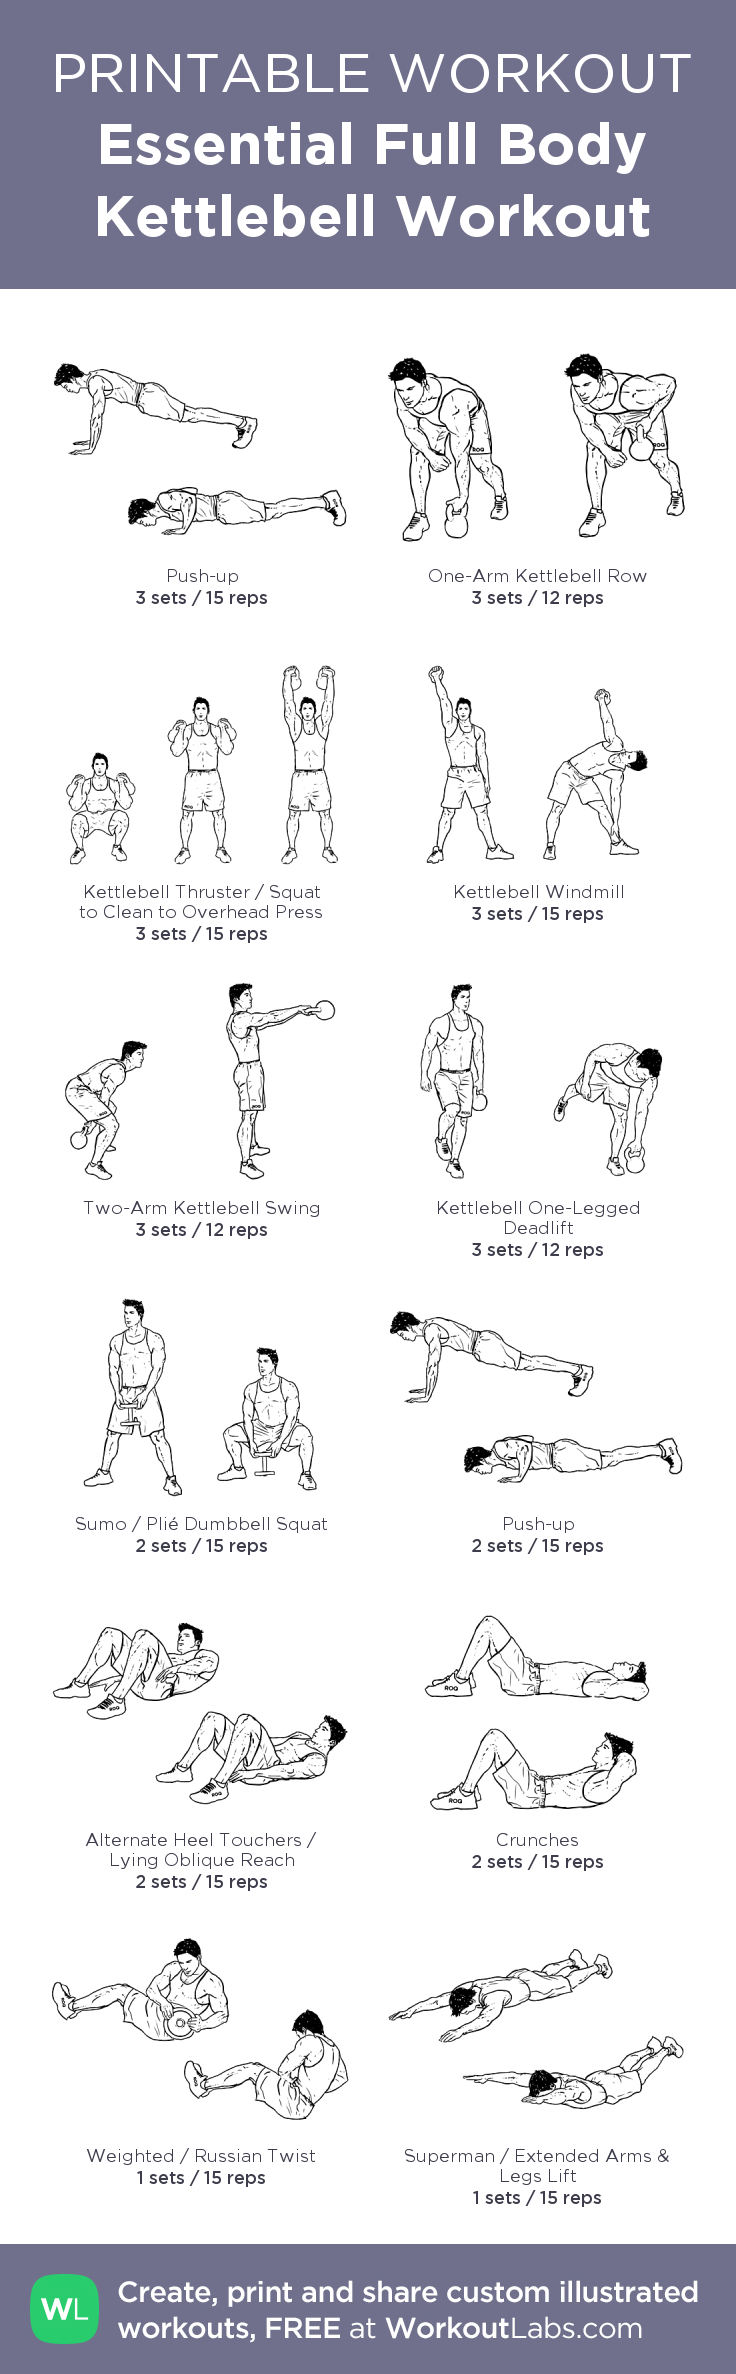 Essential Full Body Kettlebell Workout – my custom workout created at WorkoutLabs.com • Click through to download as printable PDF! #customworkout